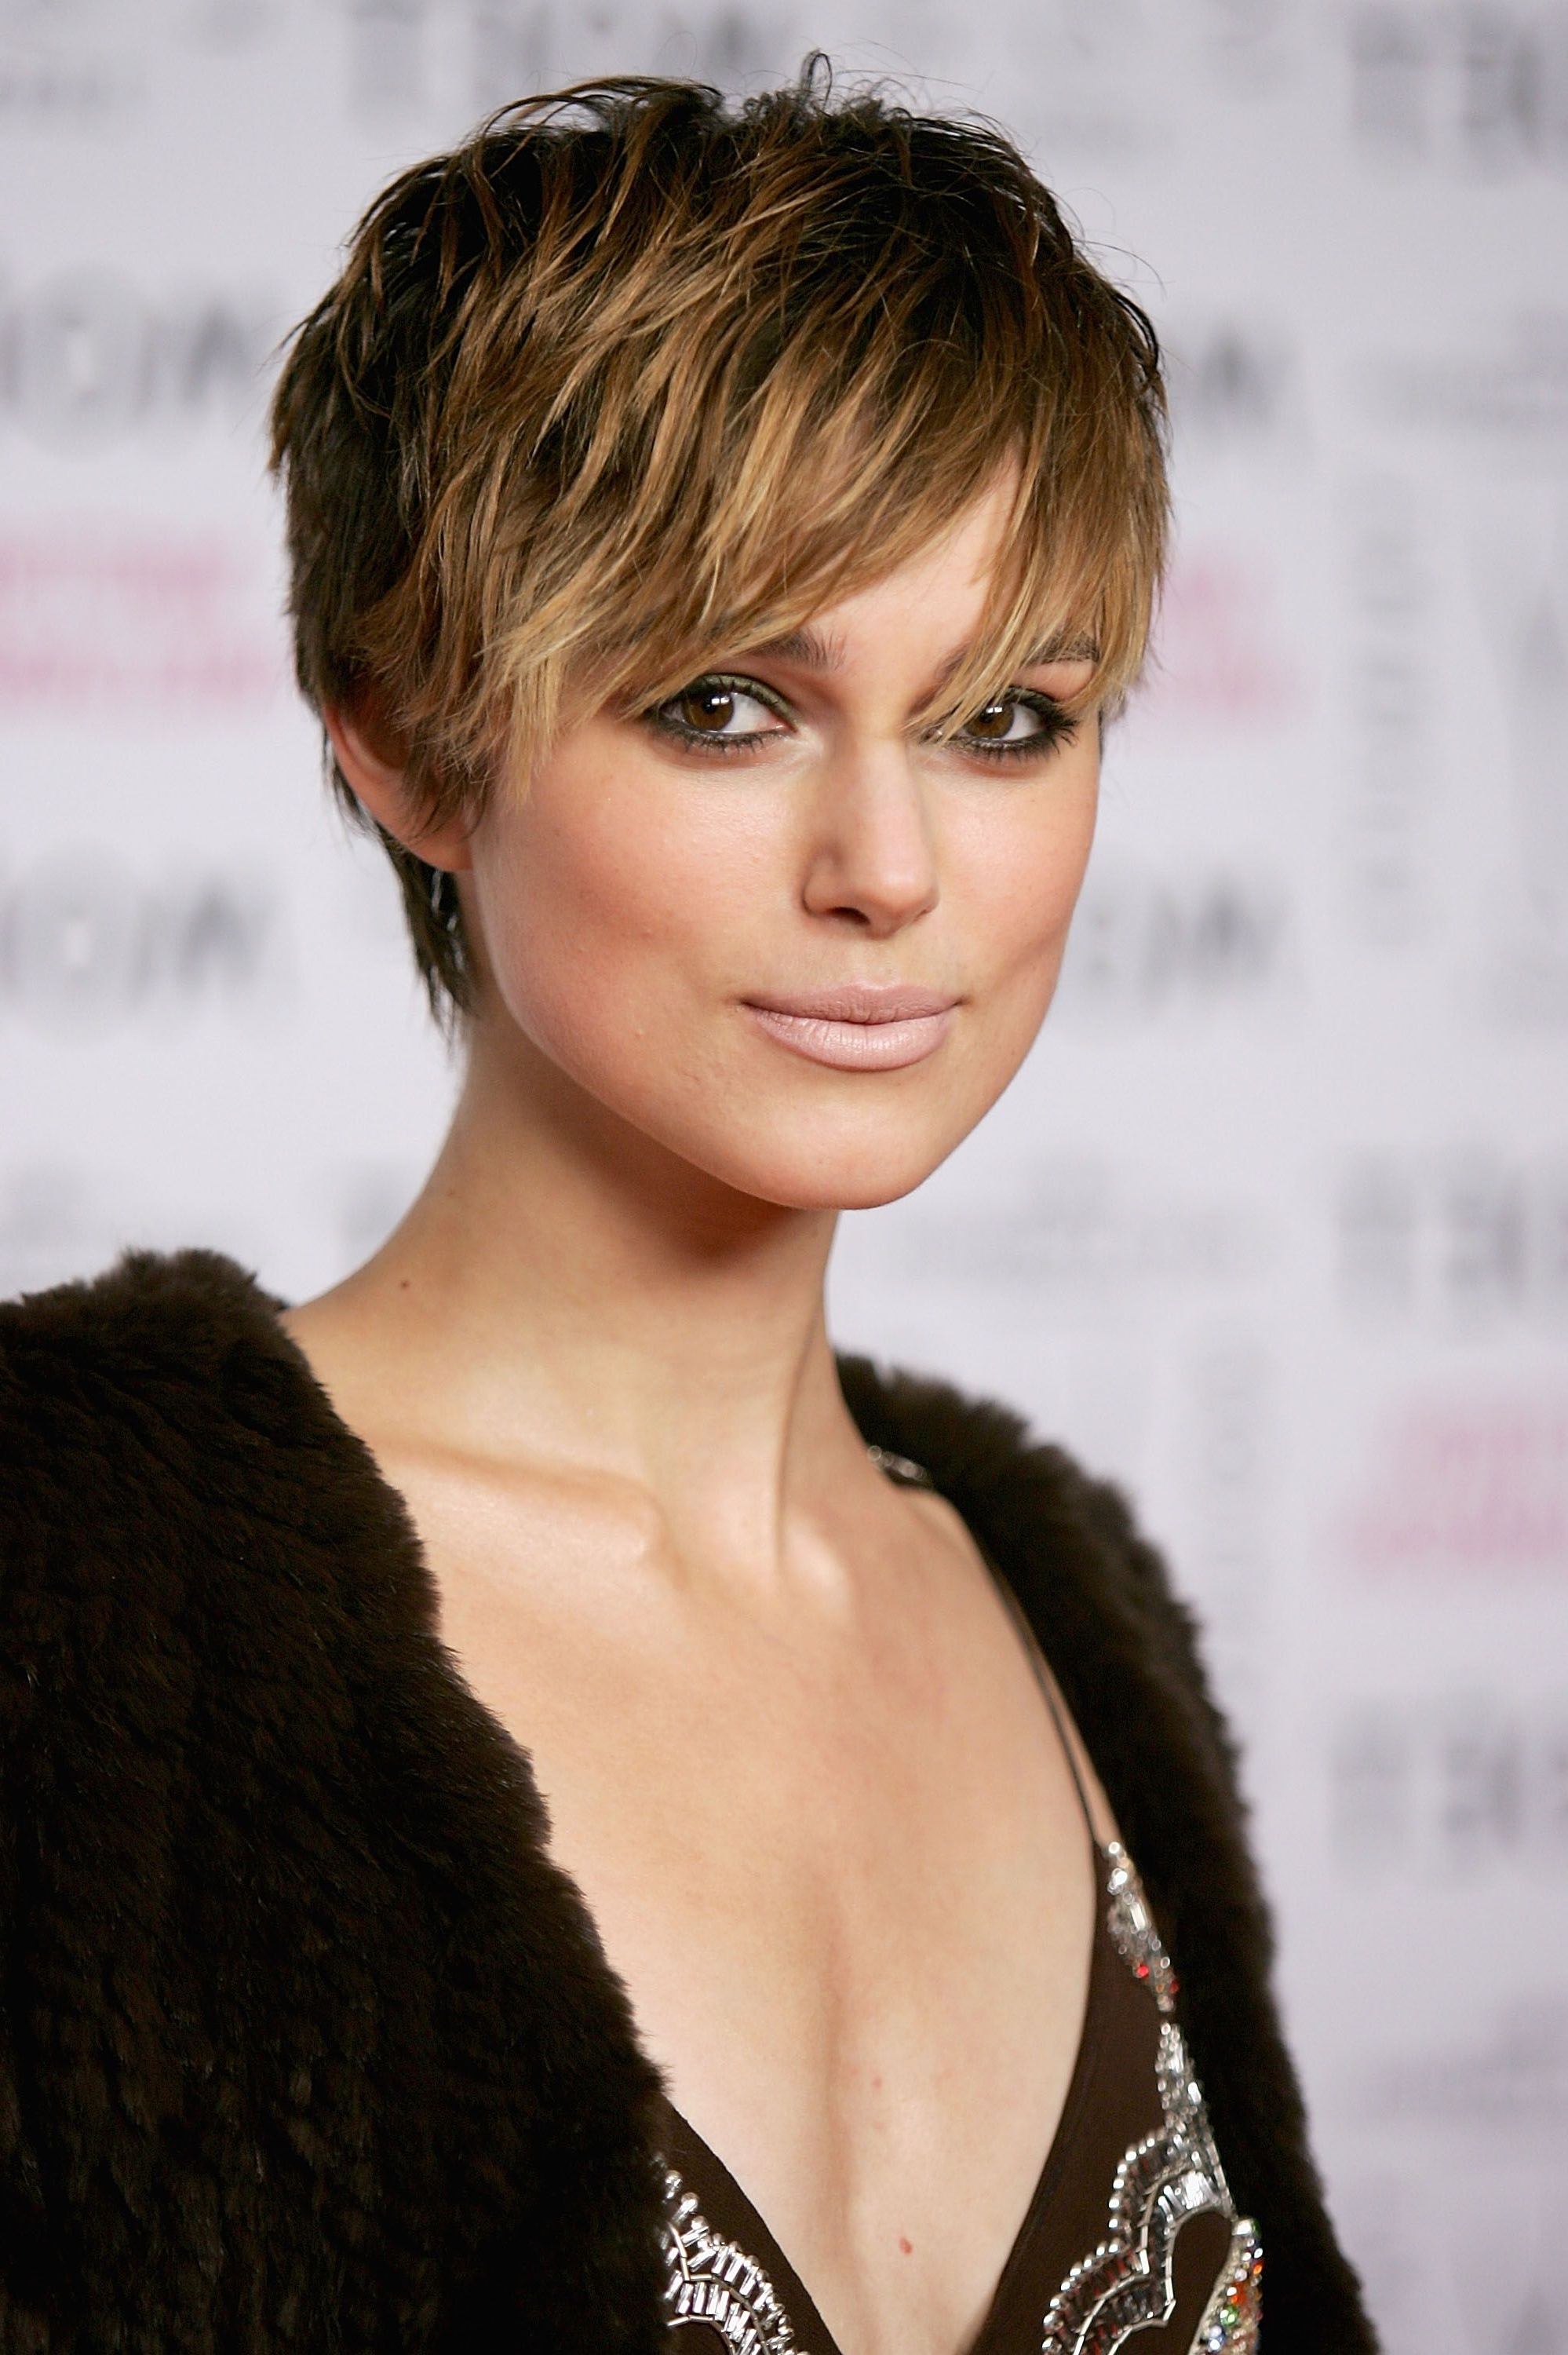 53 Best Pixie Cut Hairstyle Ideas 2018 – Cute Celebrity Pixie Haircuts Within Most Up To Date Rose Gold Pixie Hairstyles (View 15 of 20)